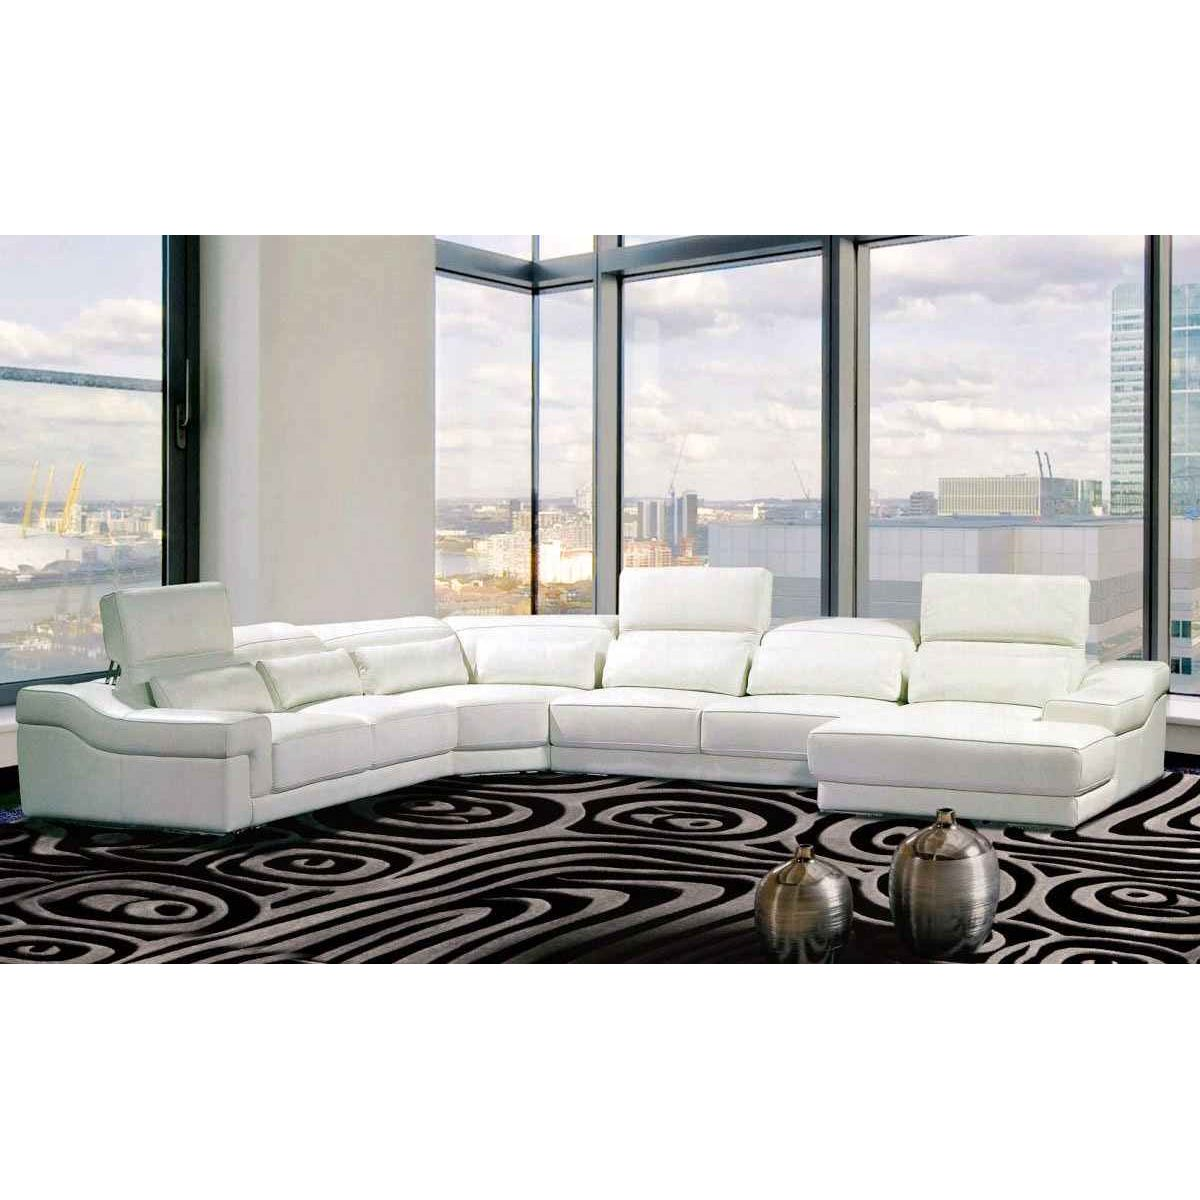 Deco in paris canape panoramique cuir blanc avec tetieres relax panama can - Canape panoramique cuir center ...